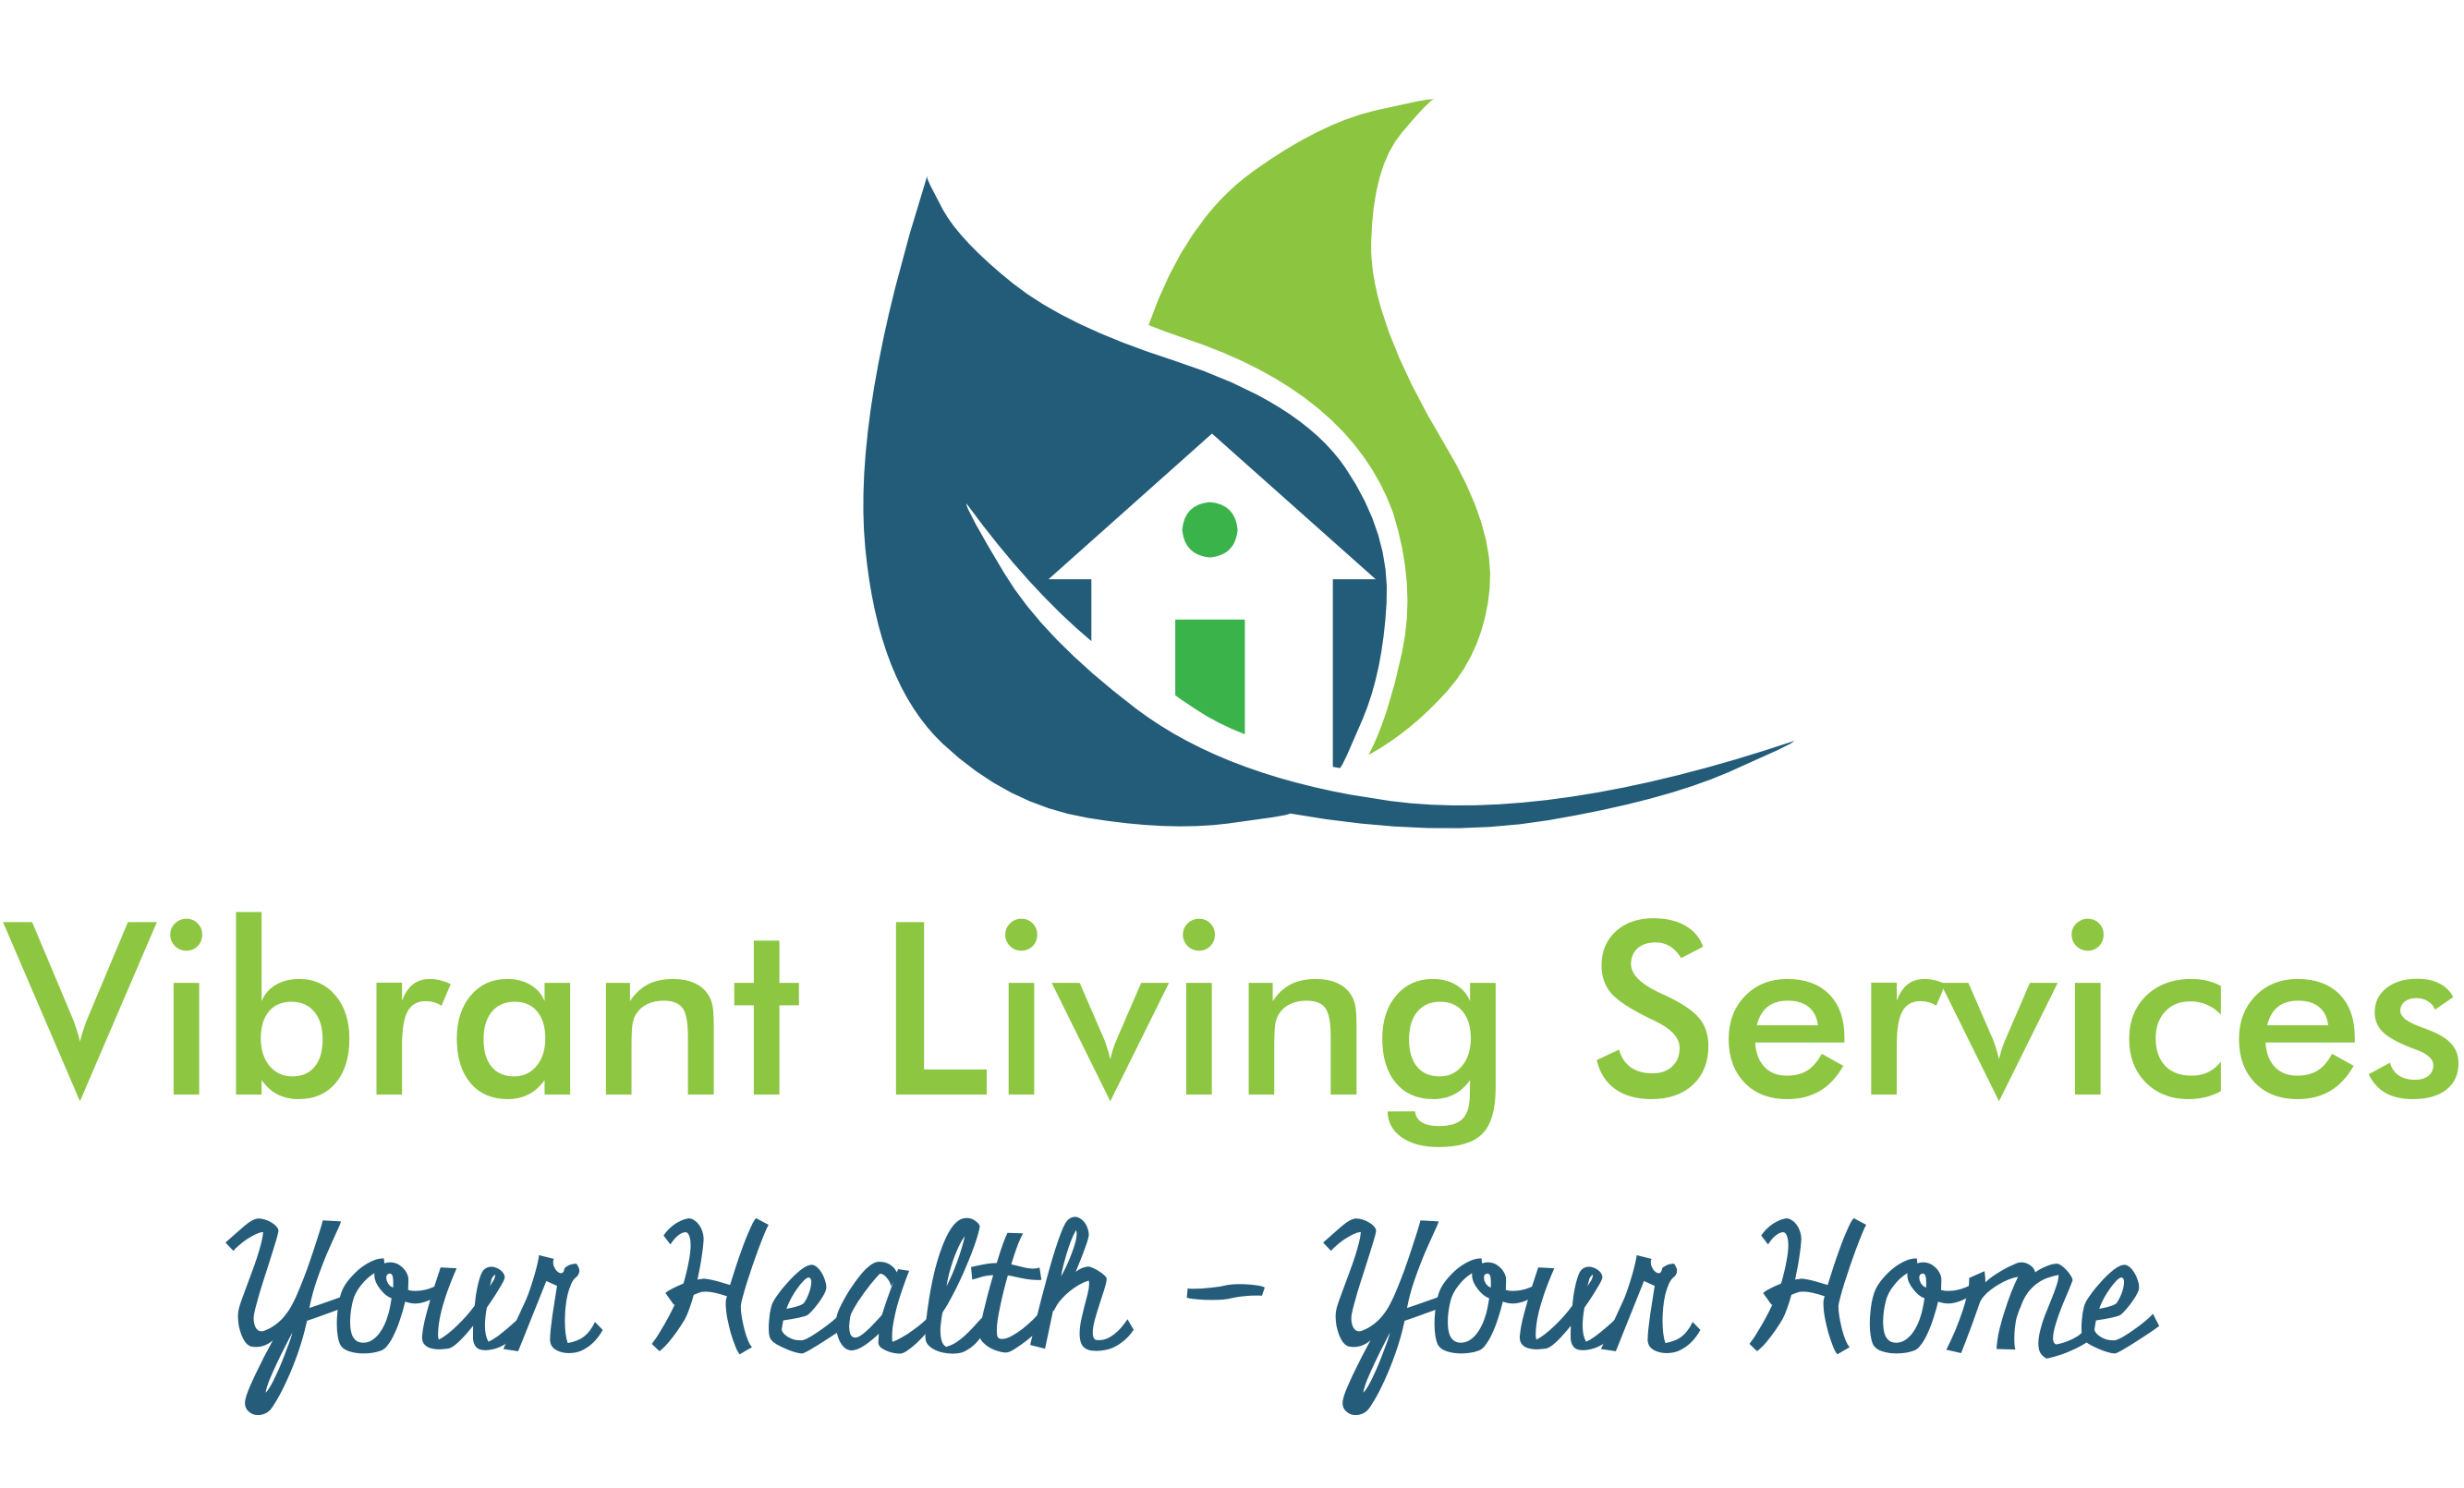 Vibrant Living Services offers both skilled and